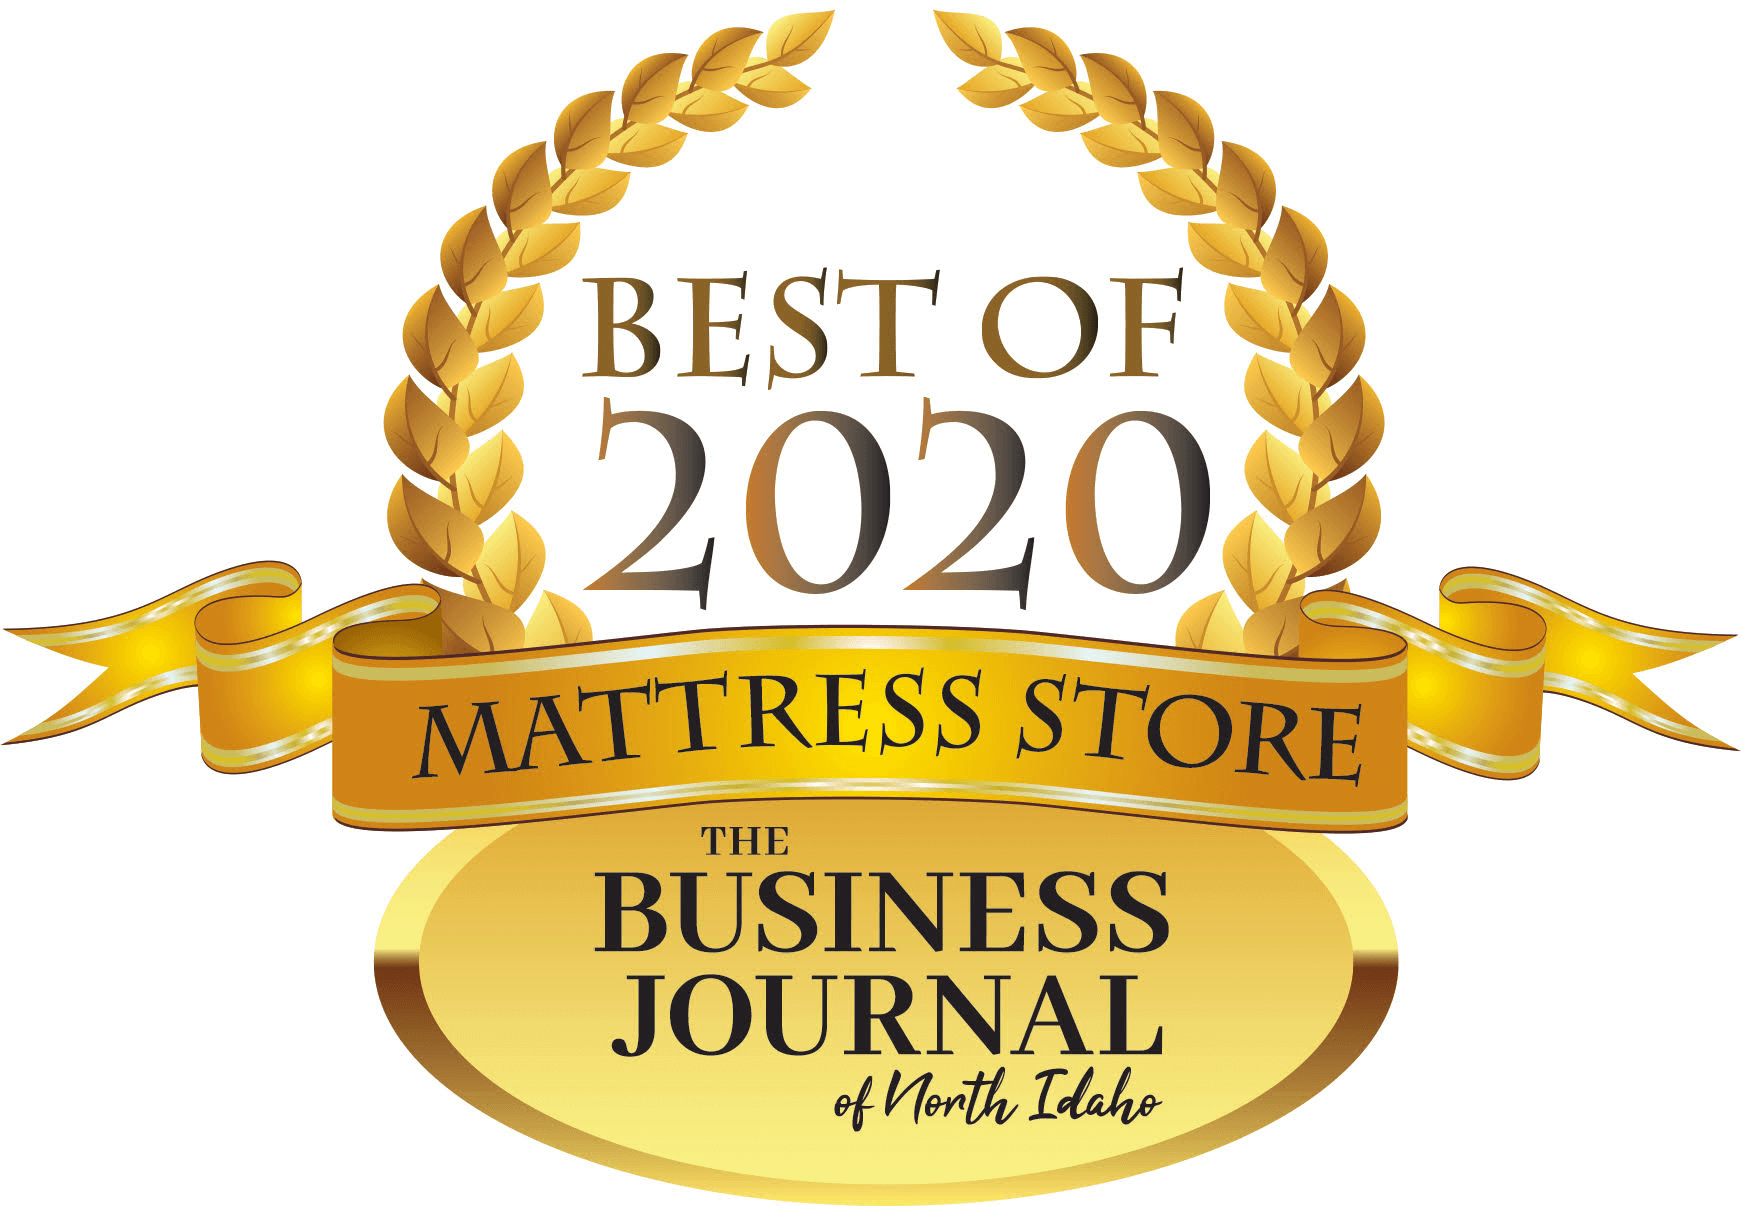 Best of 2020  - The Business Journal of North Idaho